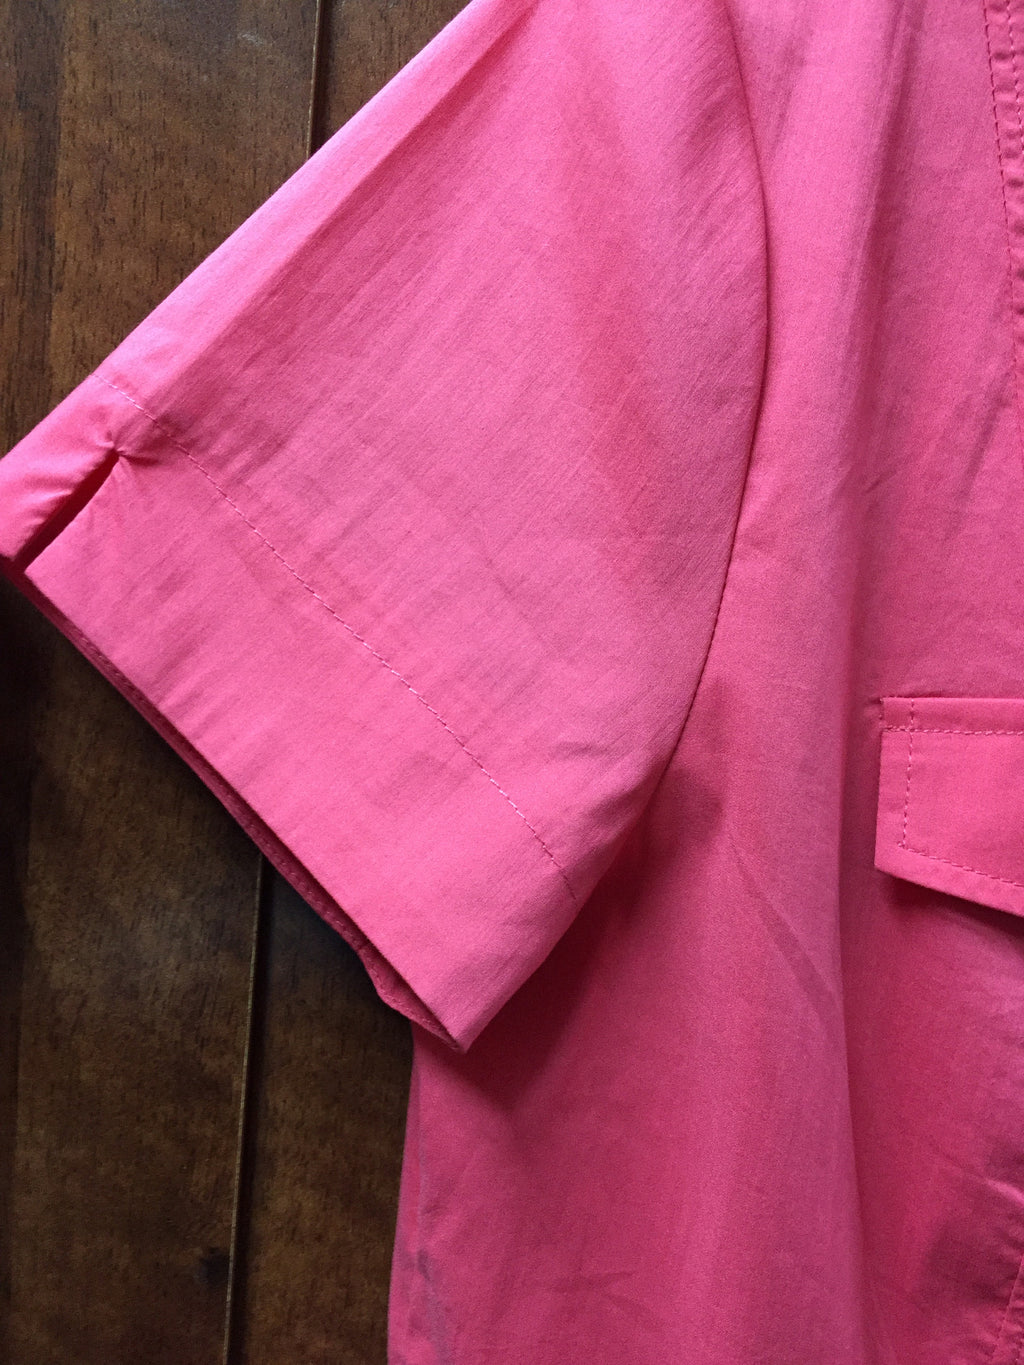 Carmine Pink Formal Stretchable Shirt - #FTFY - For The Fun Years